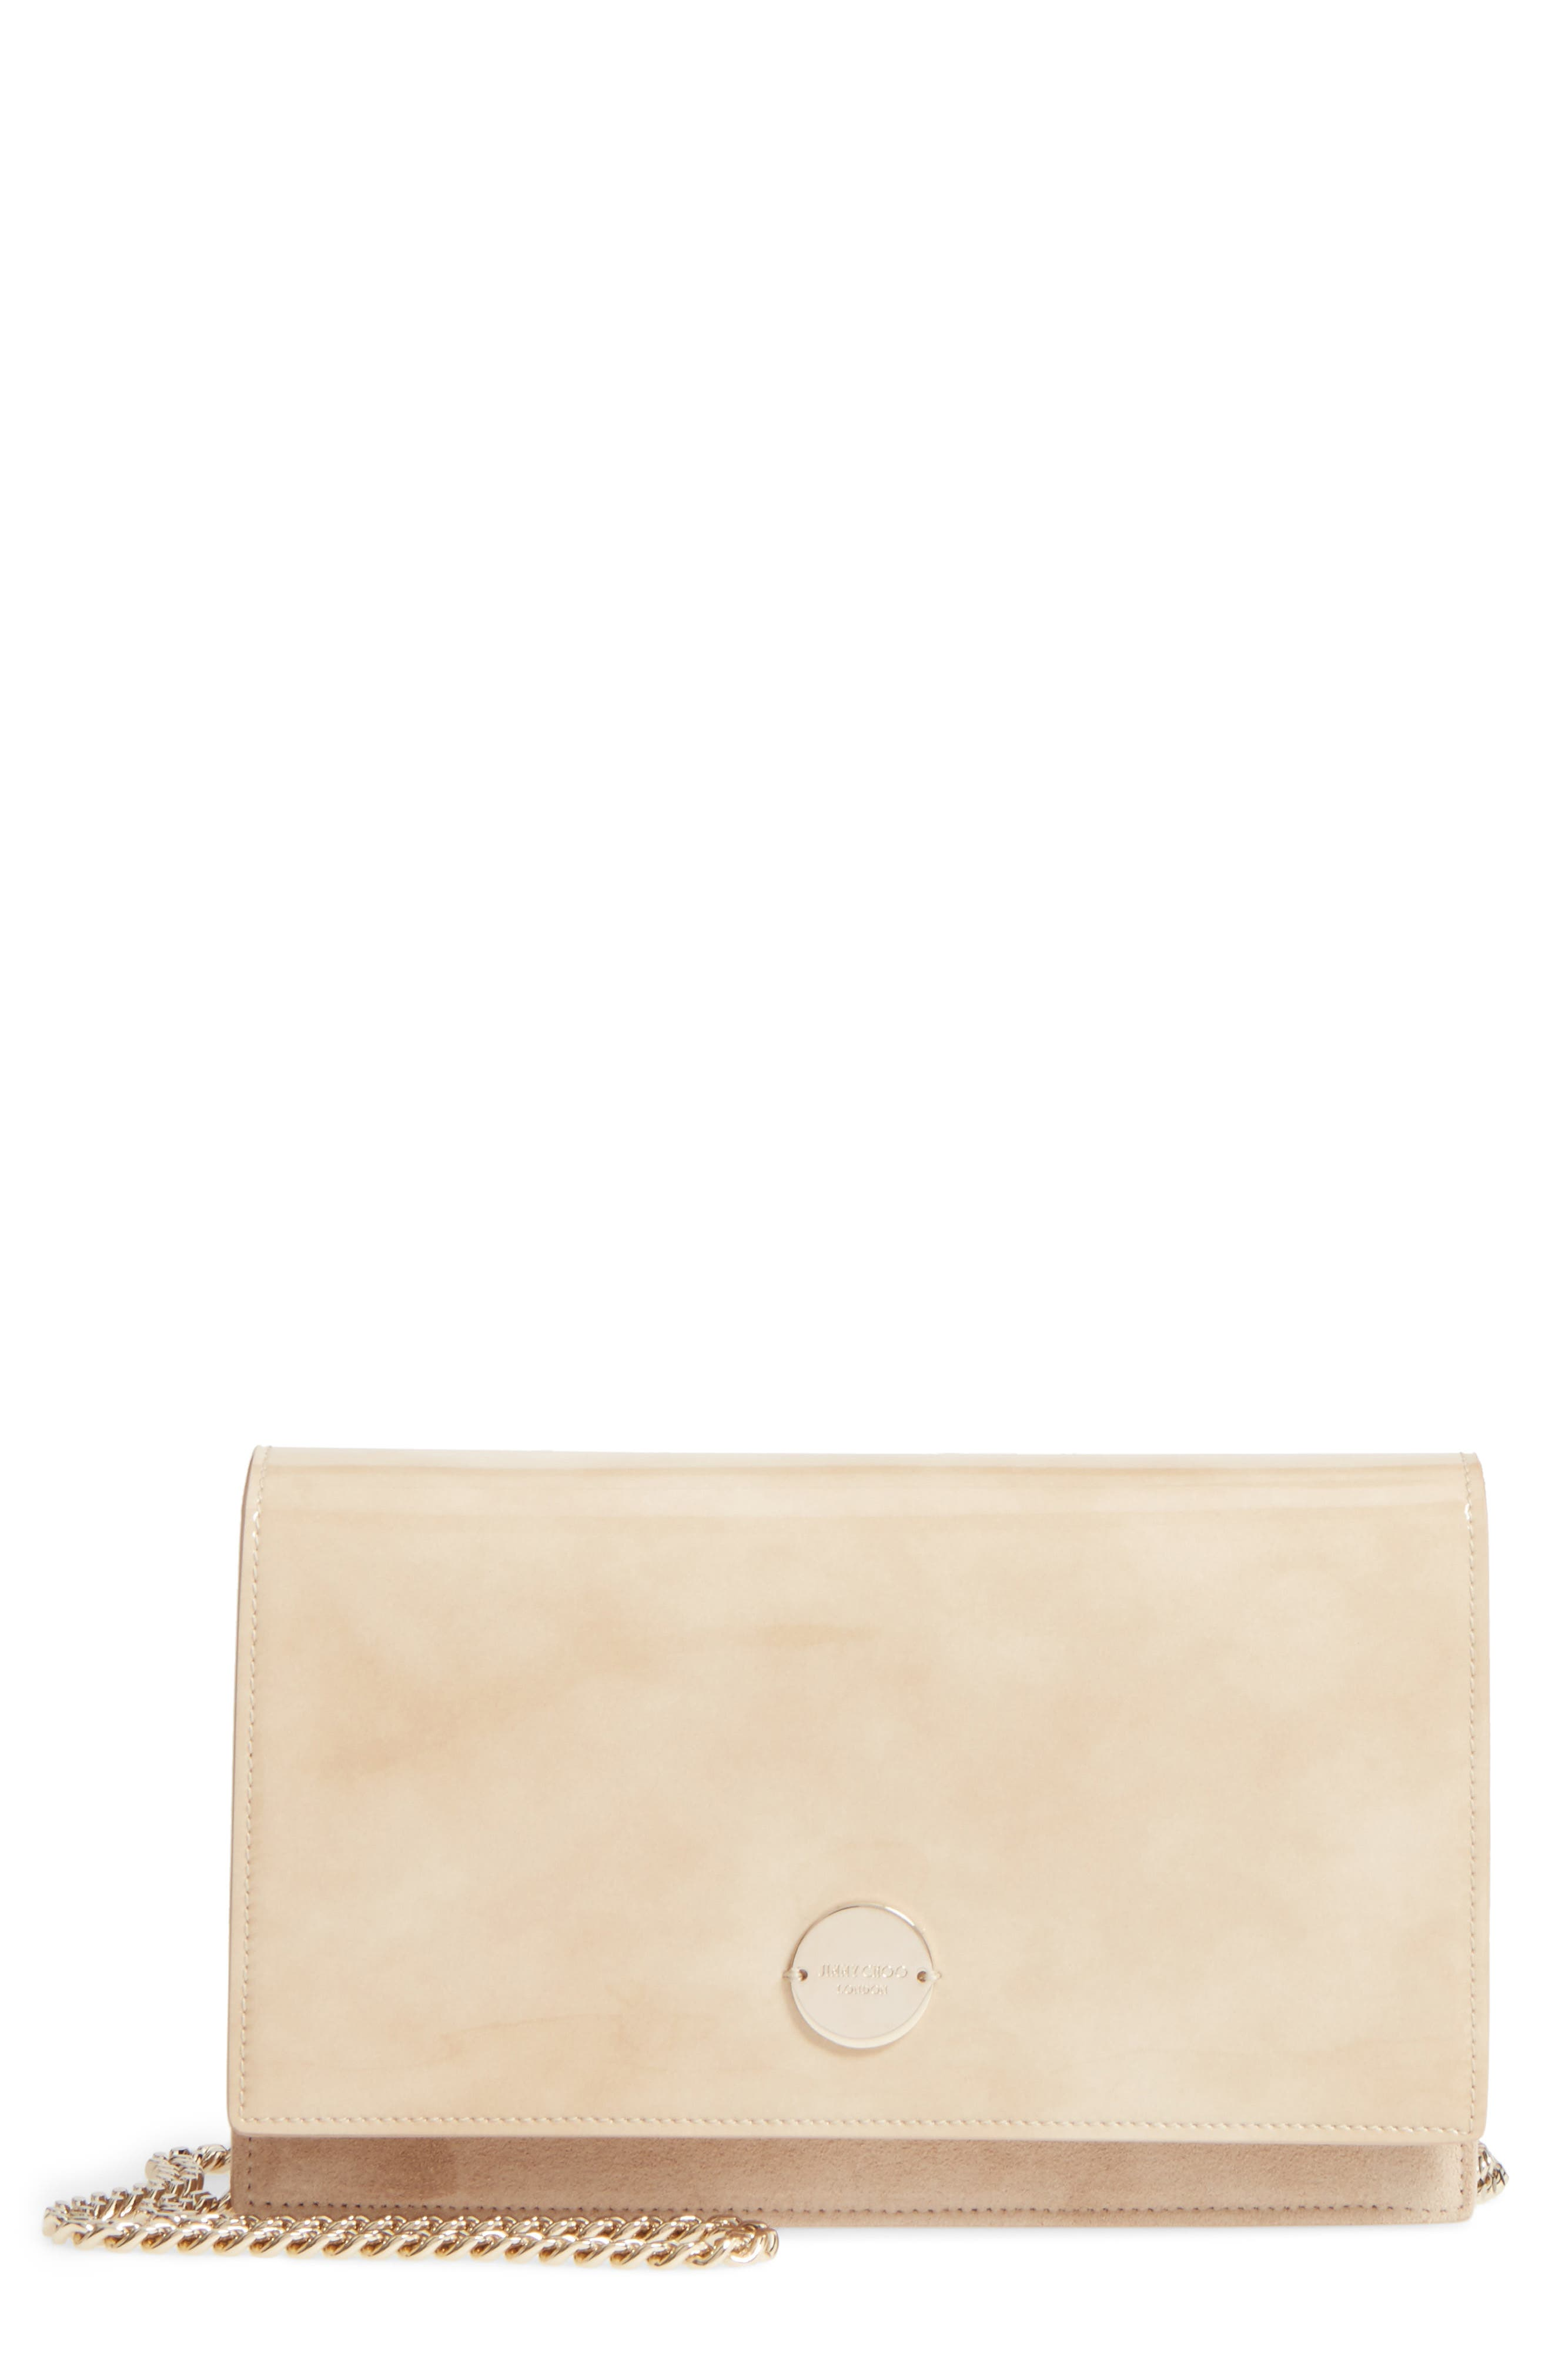 Florence Patent Leather & Suede Clutch,                             Main thumbnail 1, color,                             NUDE